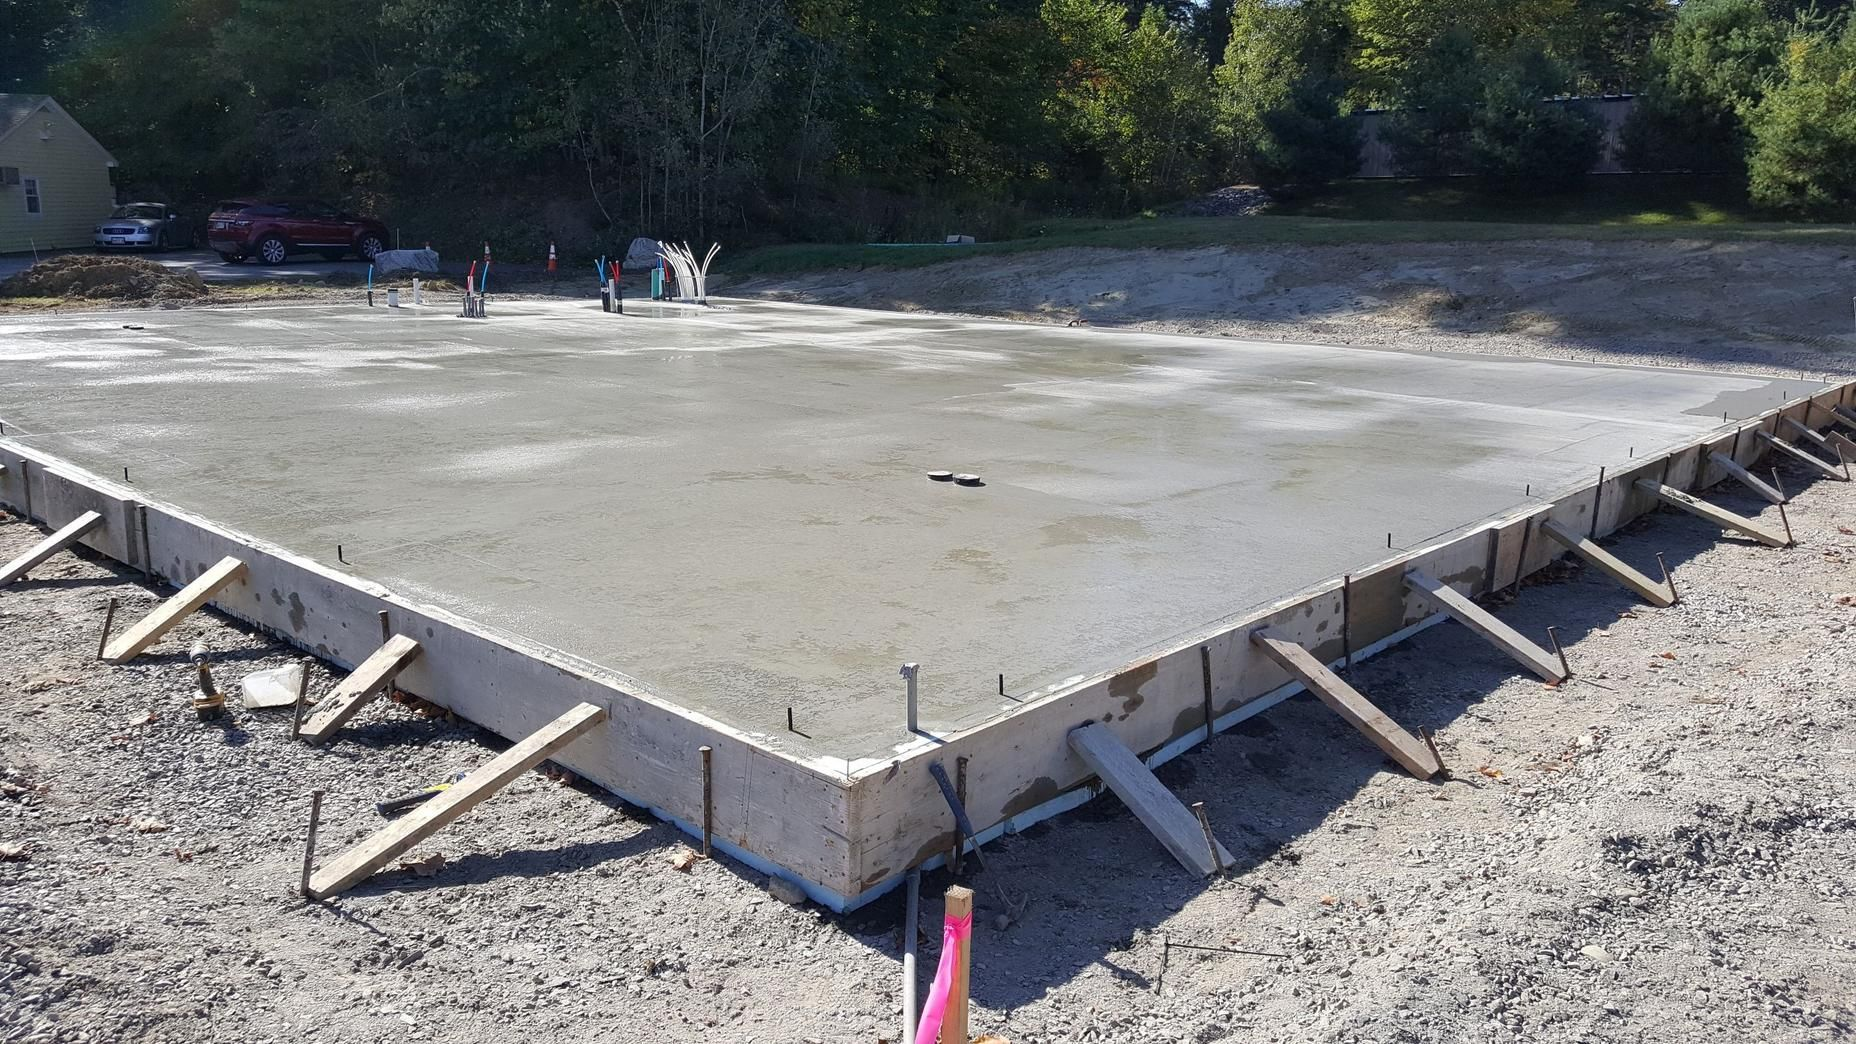 How To Form And Pour A Concrete Slab Pouring Concrete Slab Concrete Slab Types Of Concrete